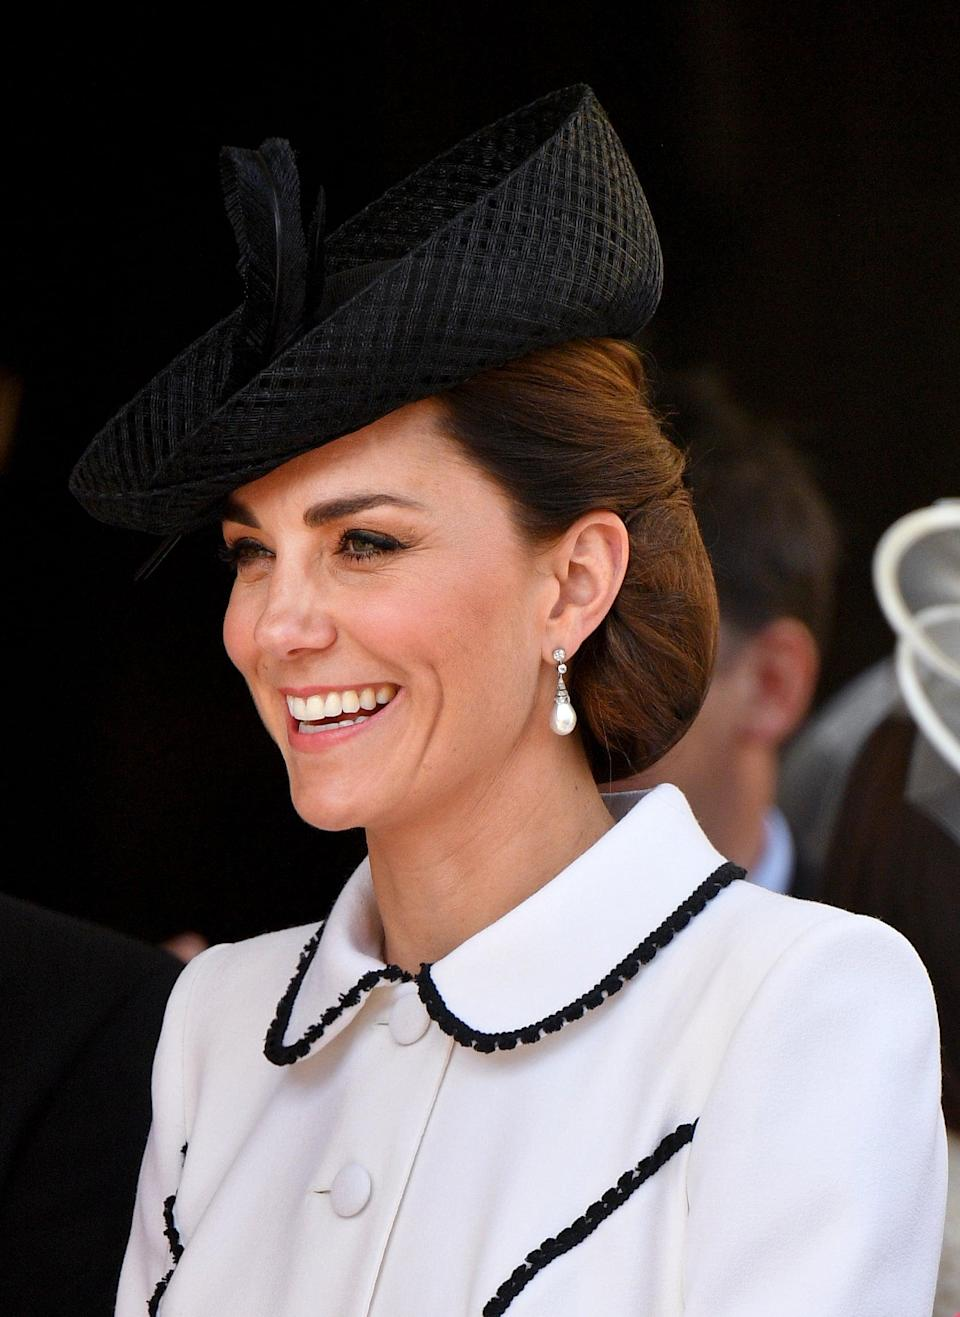 "<p>Look closely: the duchess utilized her sneaky <a href=""https://www.popsugar.com/beauty/Kate-Middleton-Wears-Hairnets-44566091"" class=""link rapid-noclick-resp"" rel=""nofollow noopener"" target=""_blank"" data-ylk=""slk:hairnet trick"">hairnet trick</a> to hold her simple updo in place for the <a href=""https://www.popsugar.com/celebrity/Royal-Family-Order-Garter-2019-46276983"" class=""link rapid-noclick-resp"" rel=""nofollow noopener"" target=""_blank"" data-ylk=""slk:Order of the Garter service"">Order of the Garter service</a>.</p>"